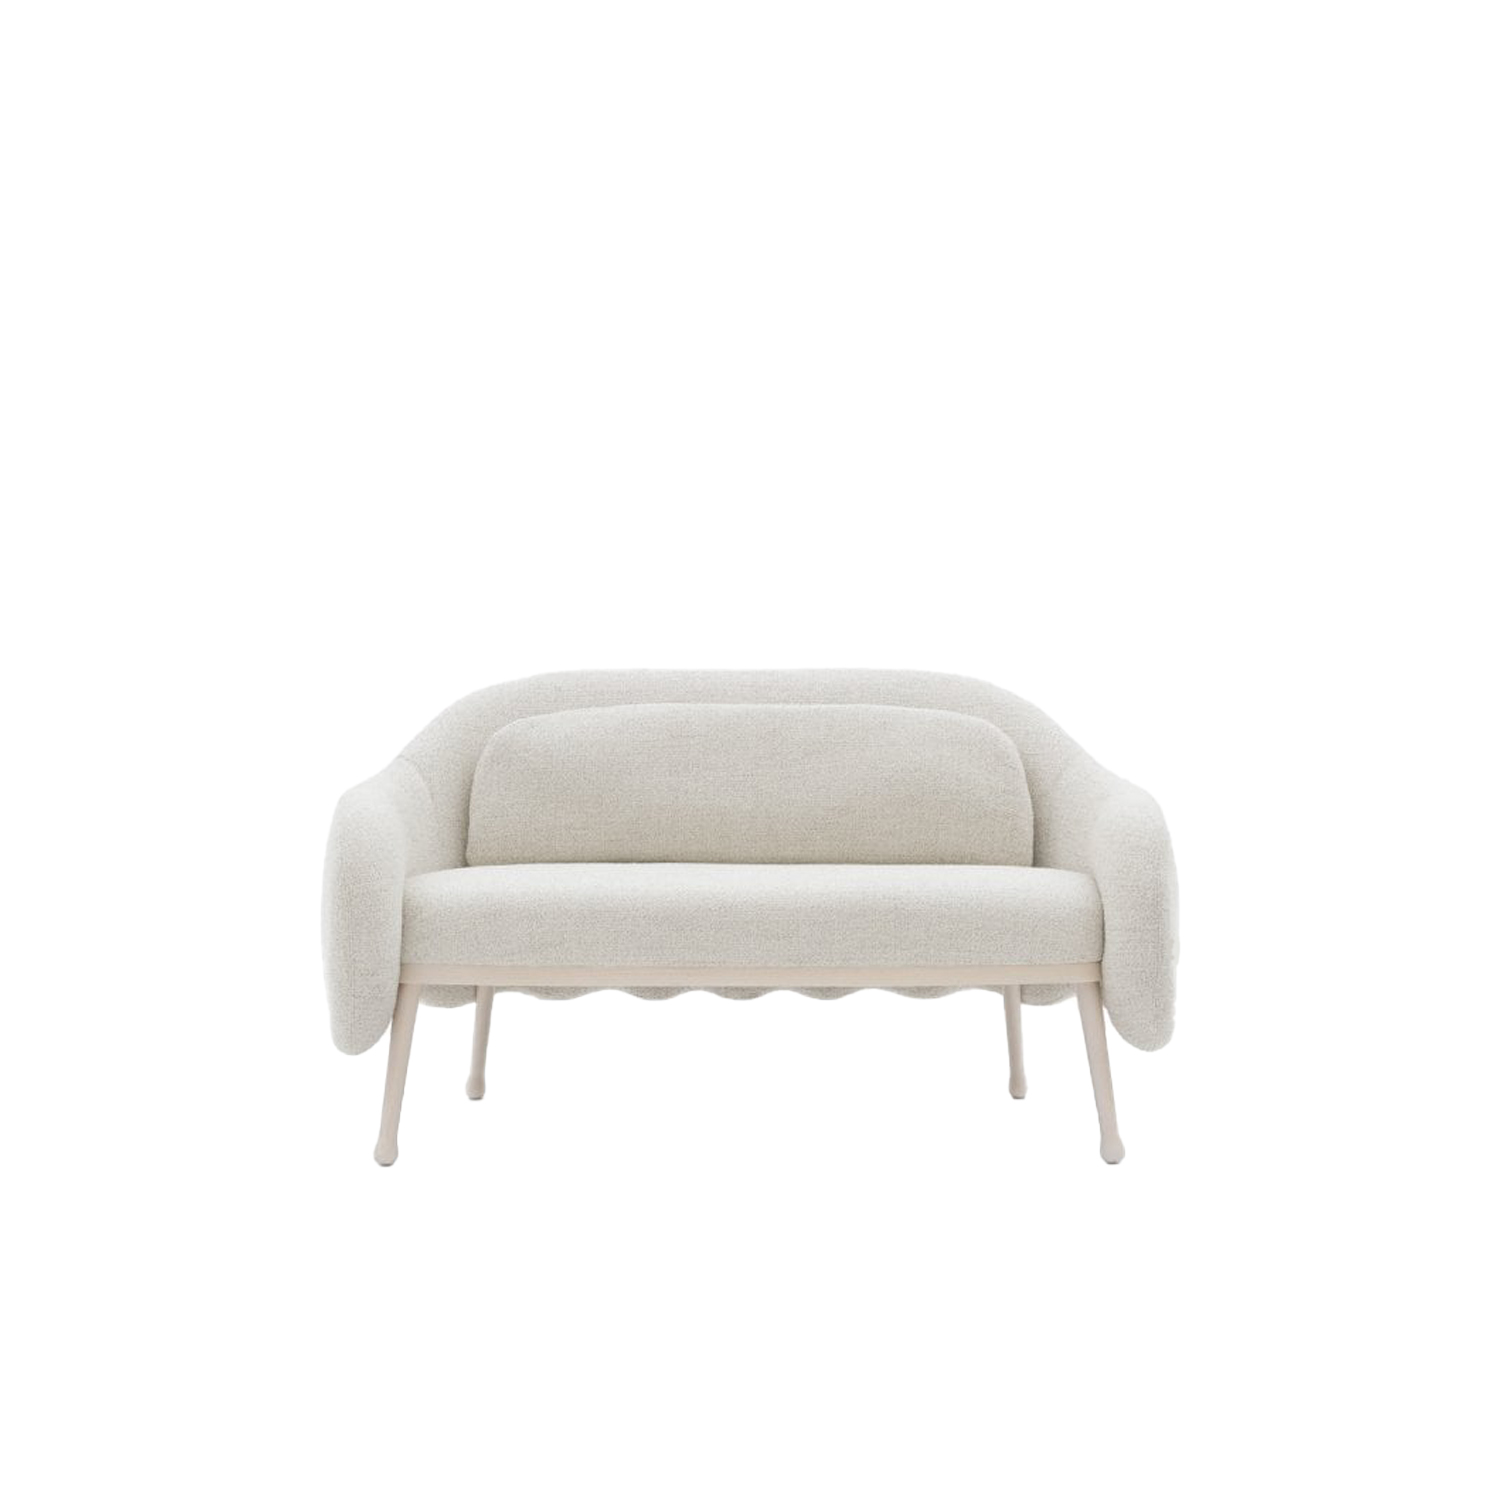 Corolla Sofa - This sofa, designed by Cristina Celestino, is a simple but elegant addition to your home. The wavy back adds personality and the shape is designed with comfort in mind. This is the perfect thing for small spaces or entrance ways and hall ways. The legs are slightly slanted and come in either Ash, Beech or Lacquered Beech. The upholstery can be fabric, leather or your chosen material.  This can come with cushions. Please enquire for more information.   | Matter of Stuff